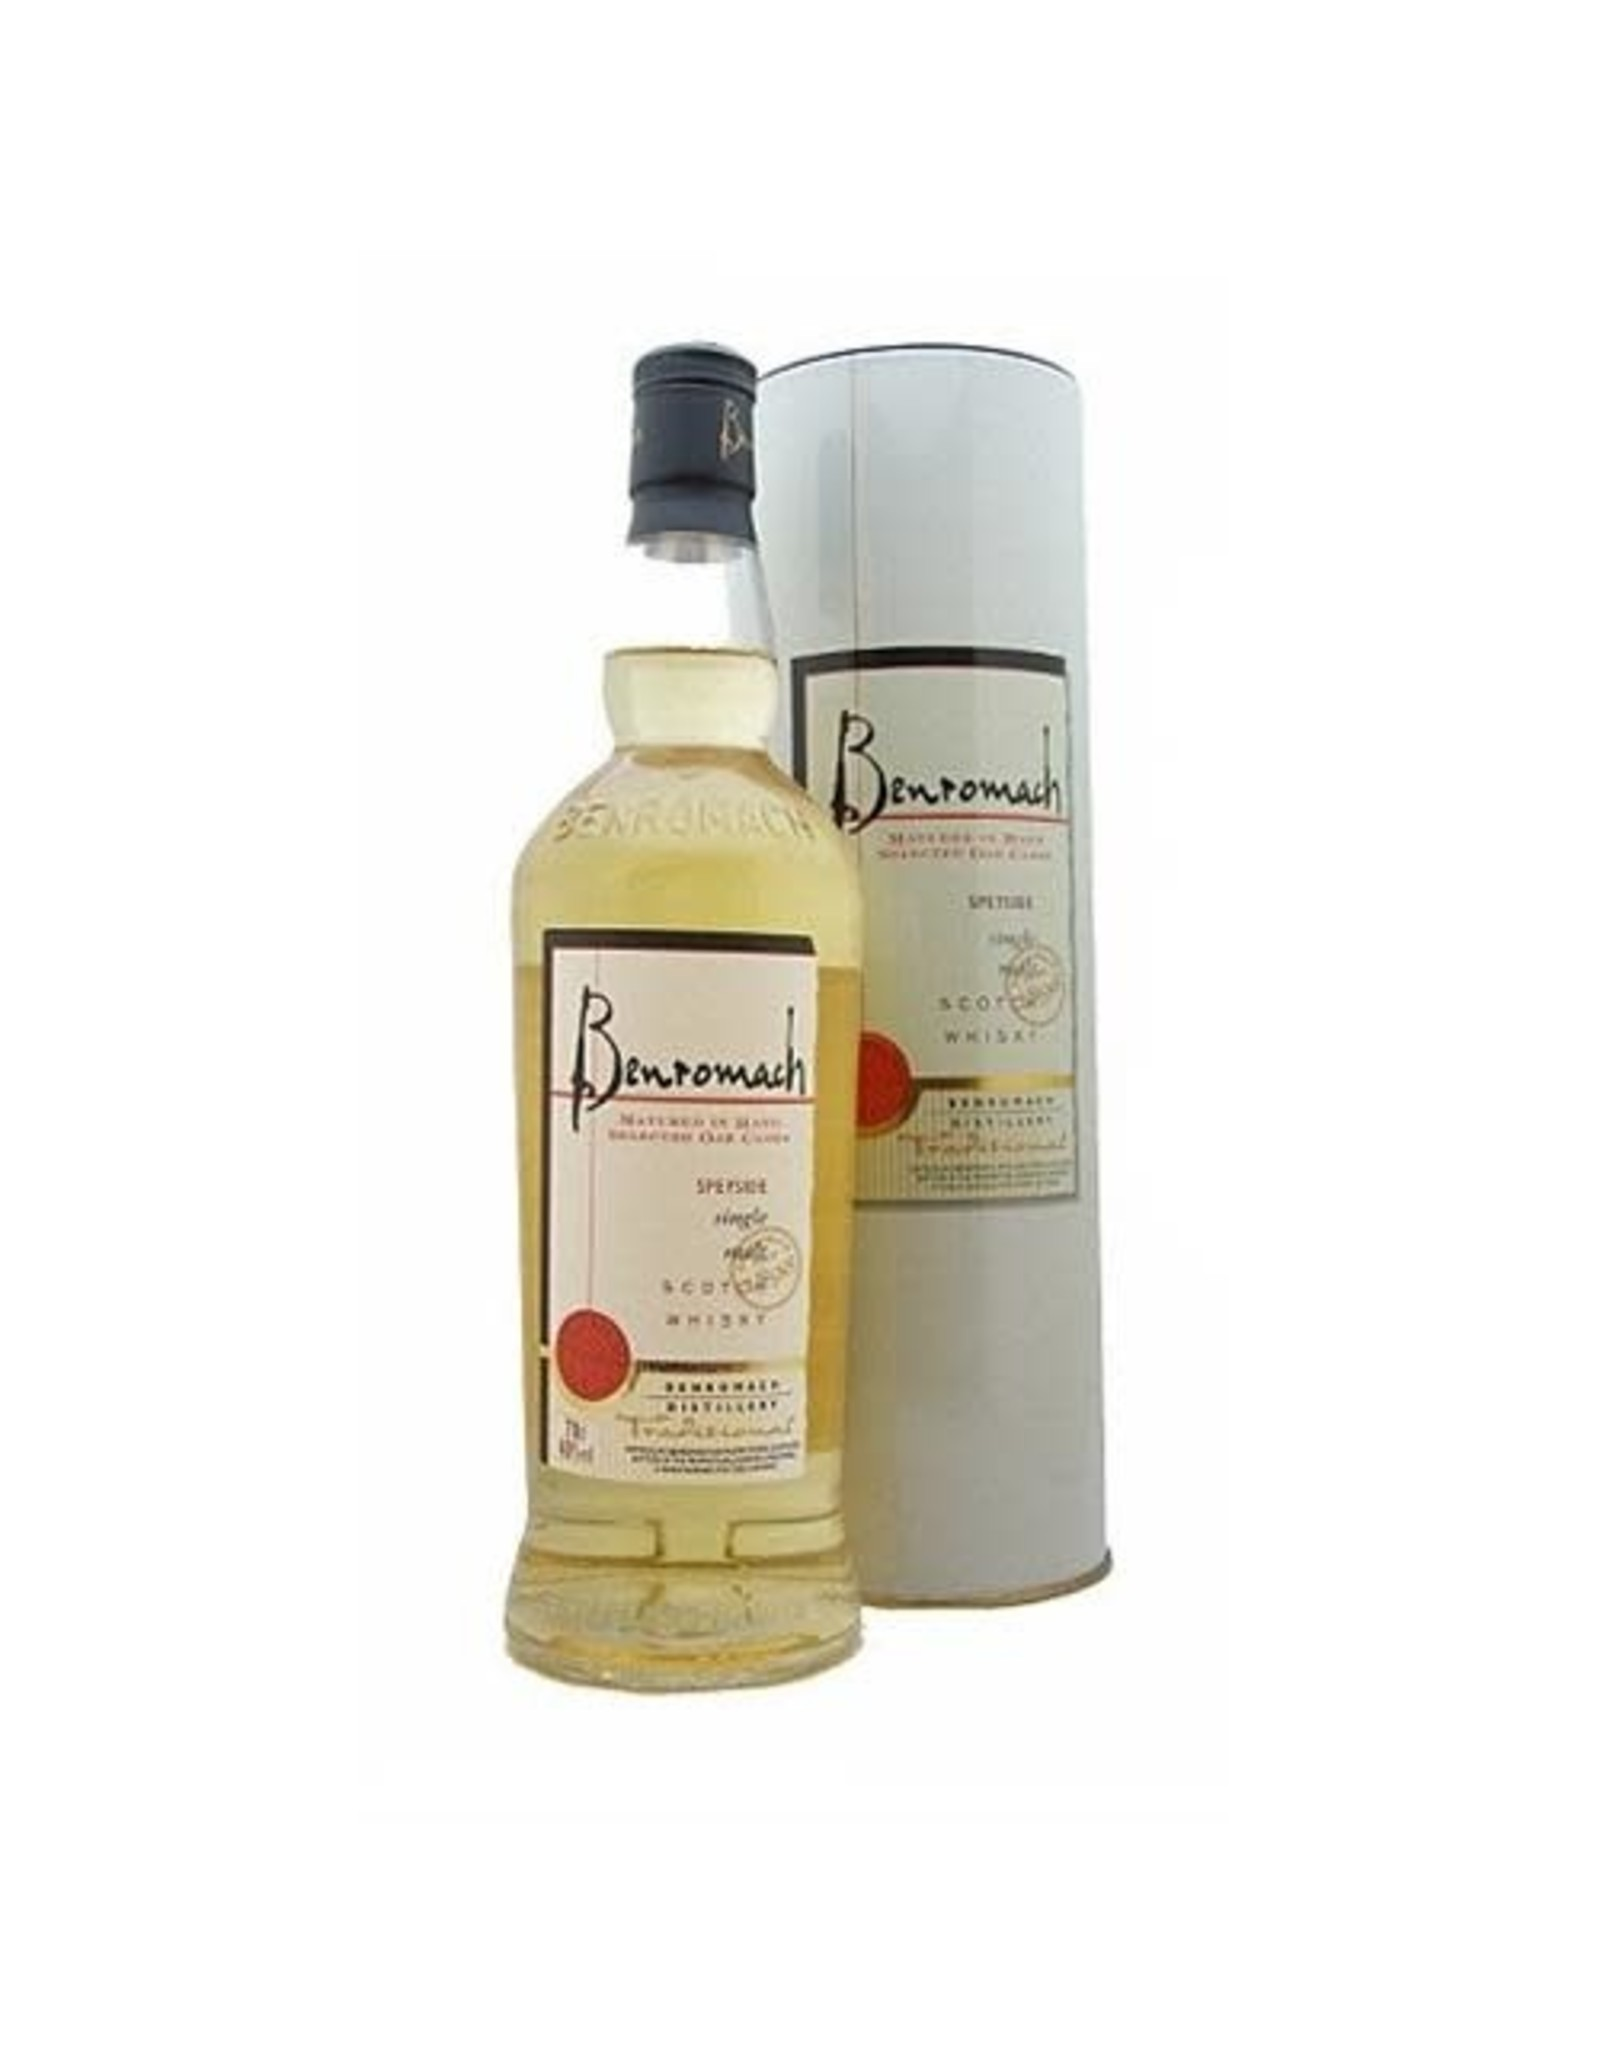 BENROMACH TRADITIONAL 750ML